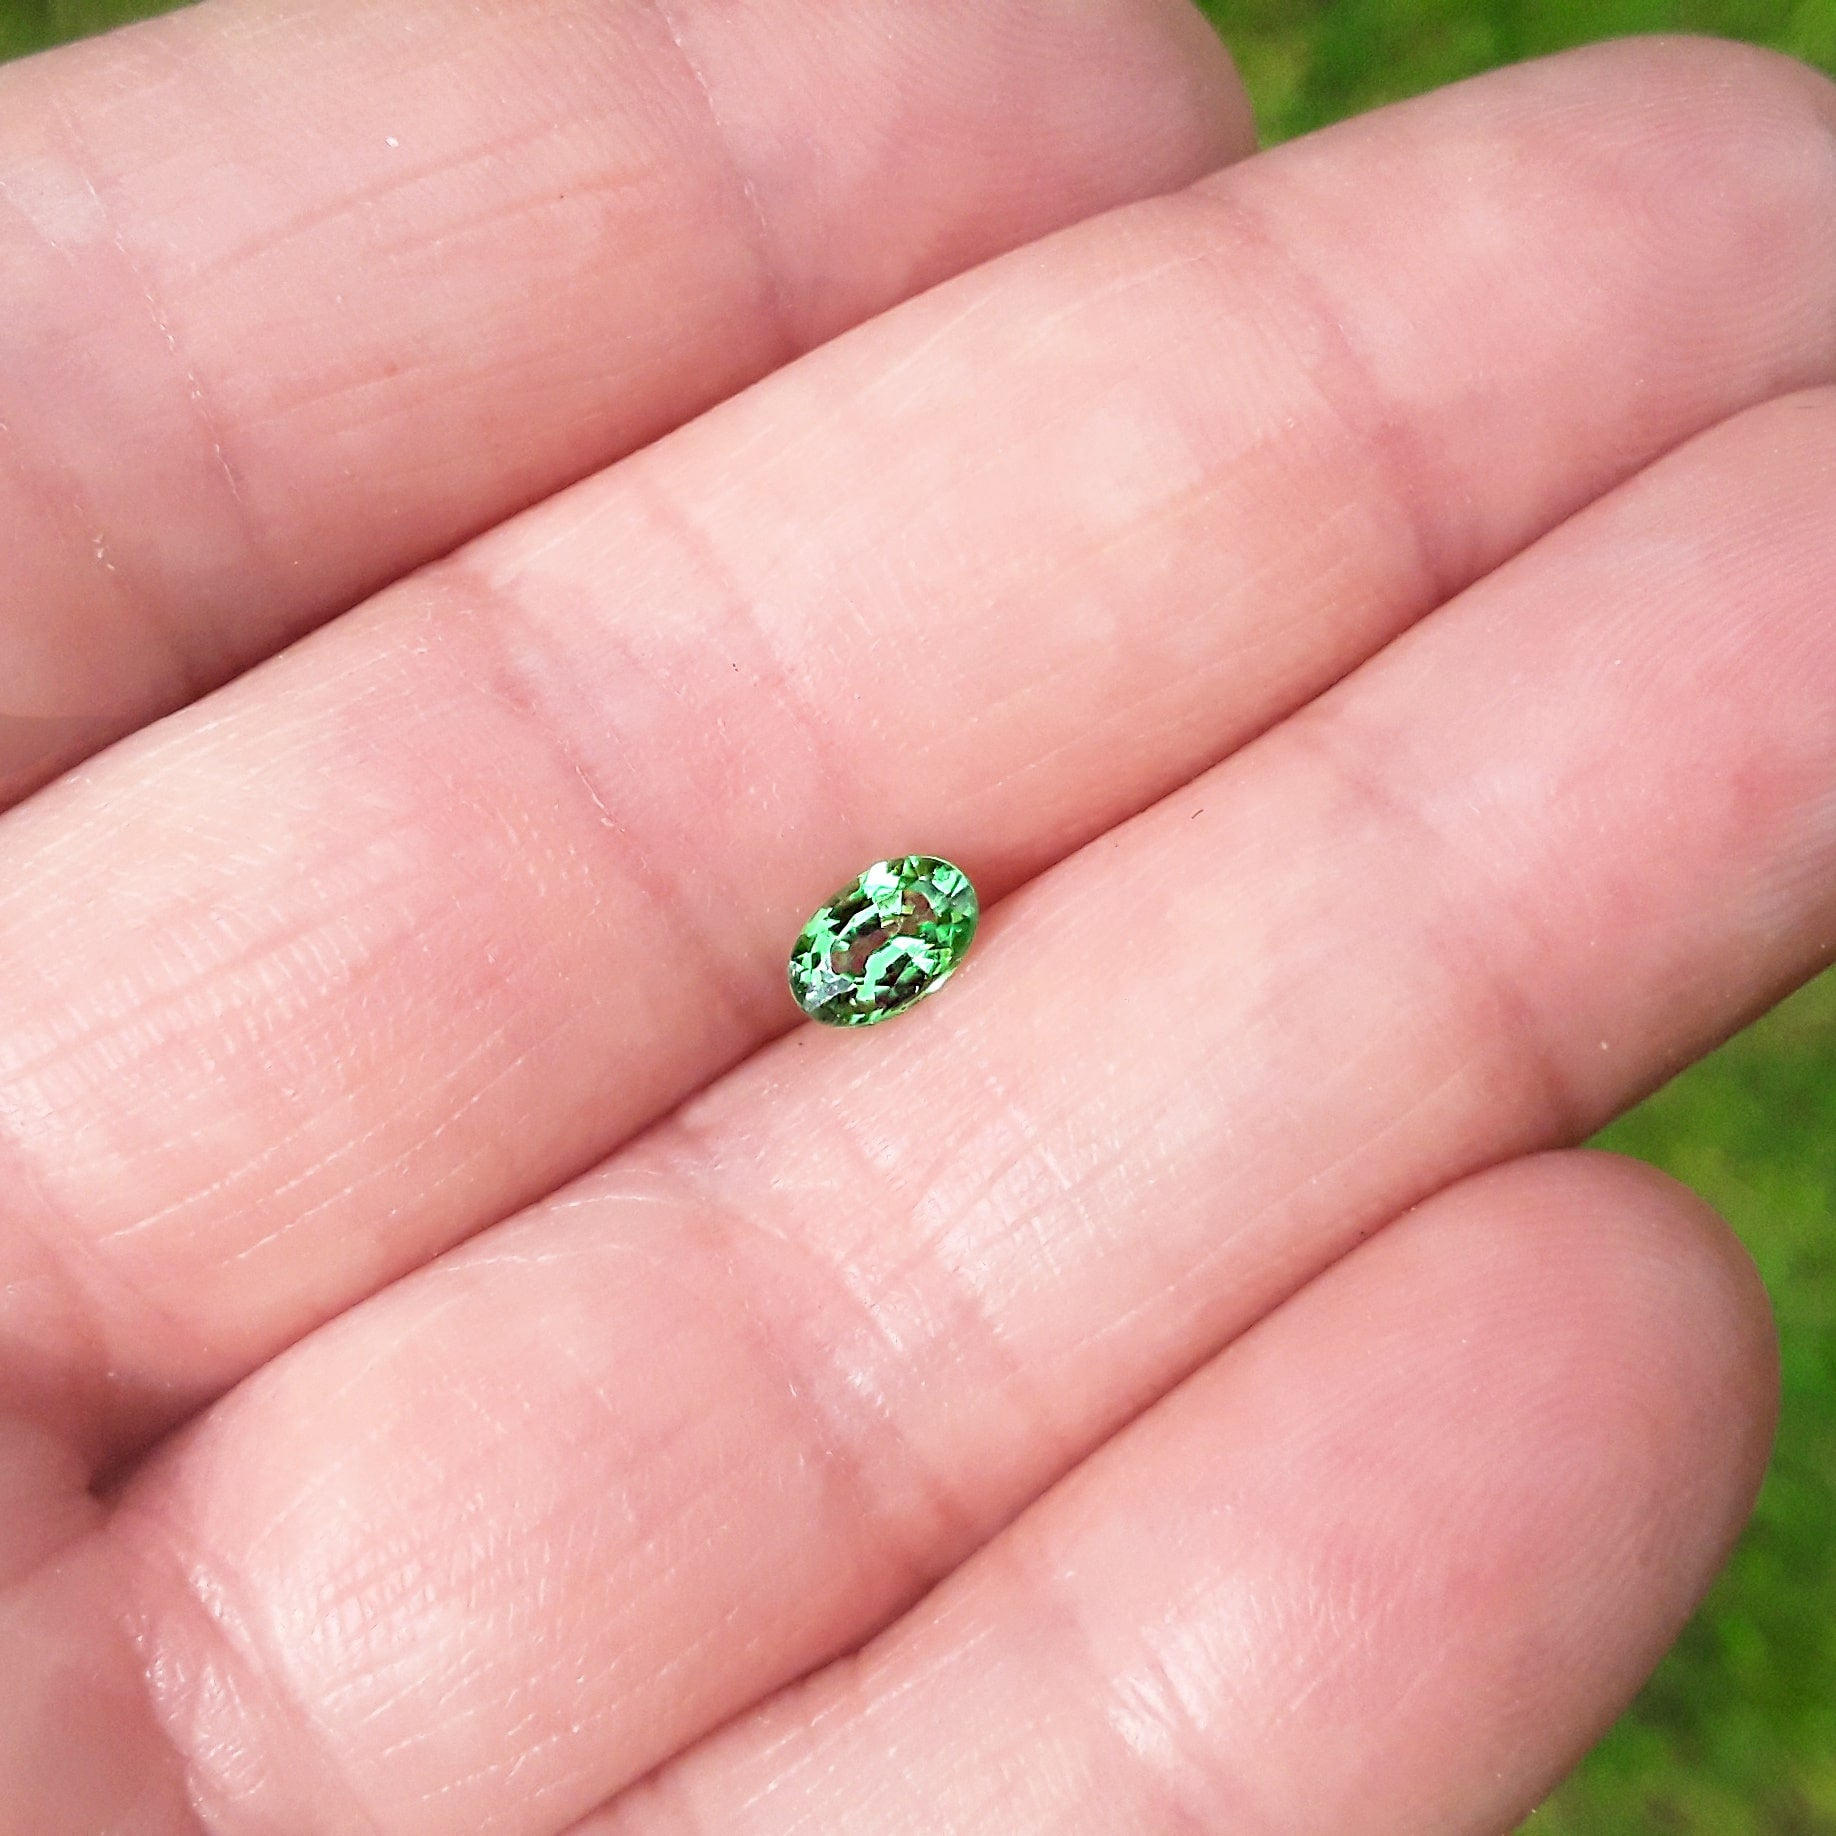 Image of .5 Carat Oval Tsavorite Garnet - For Custom Jewelry